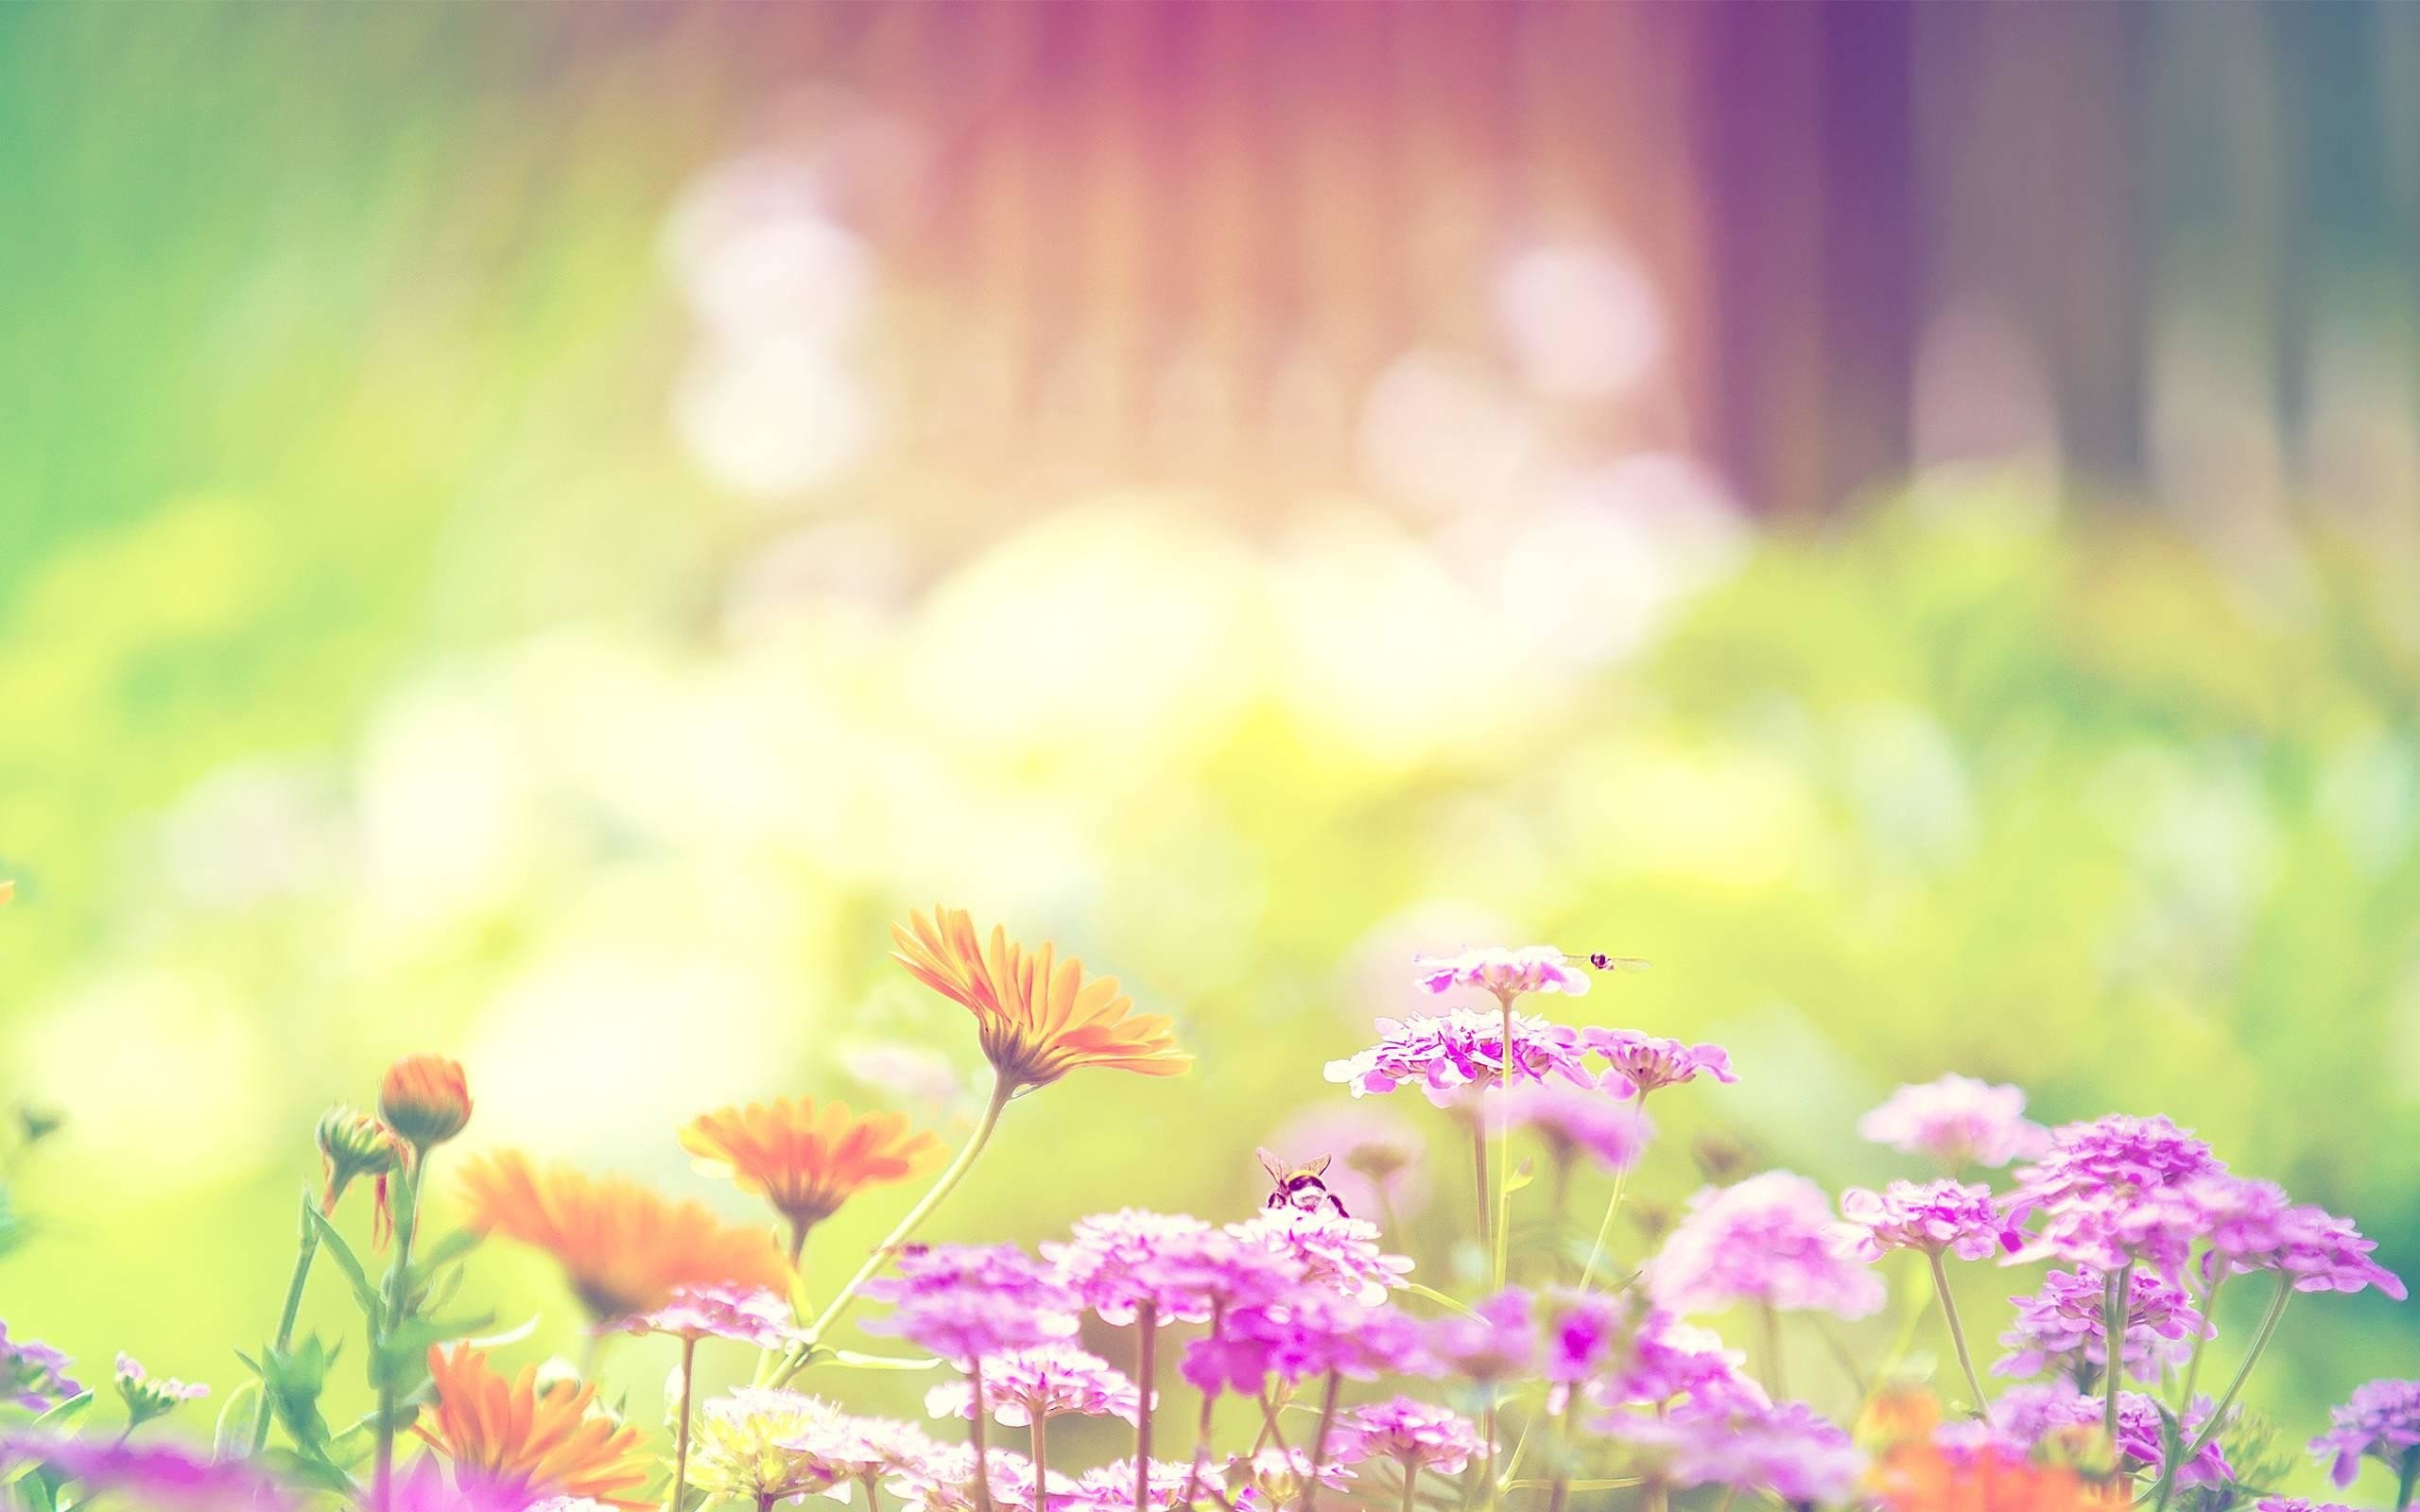 download Cute Spring Backgrounds 43 images [2560x1600] for 2560x1600